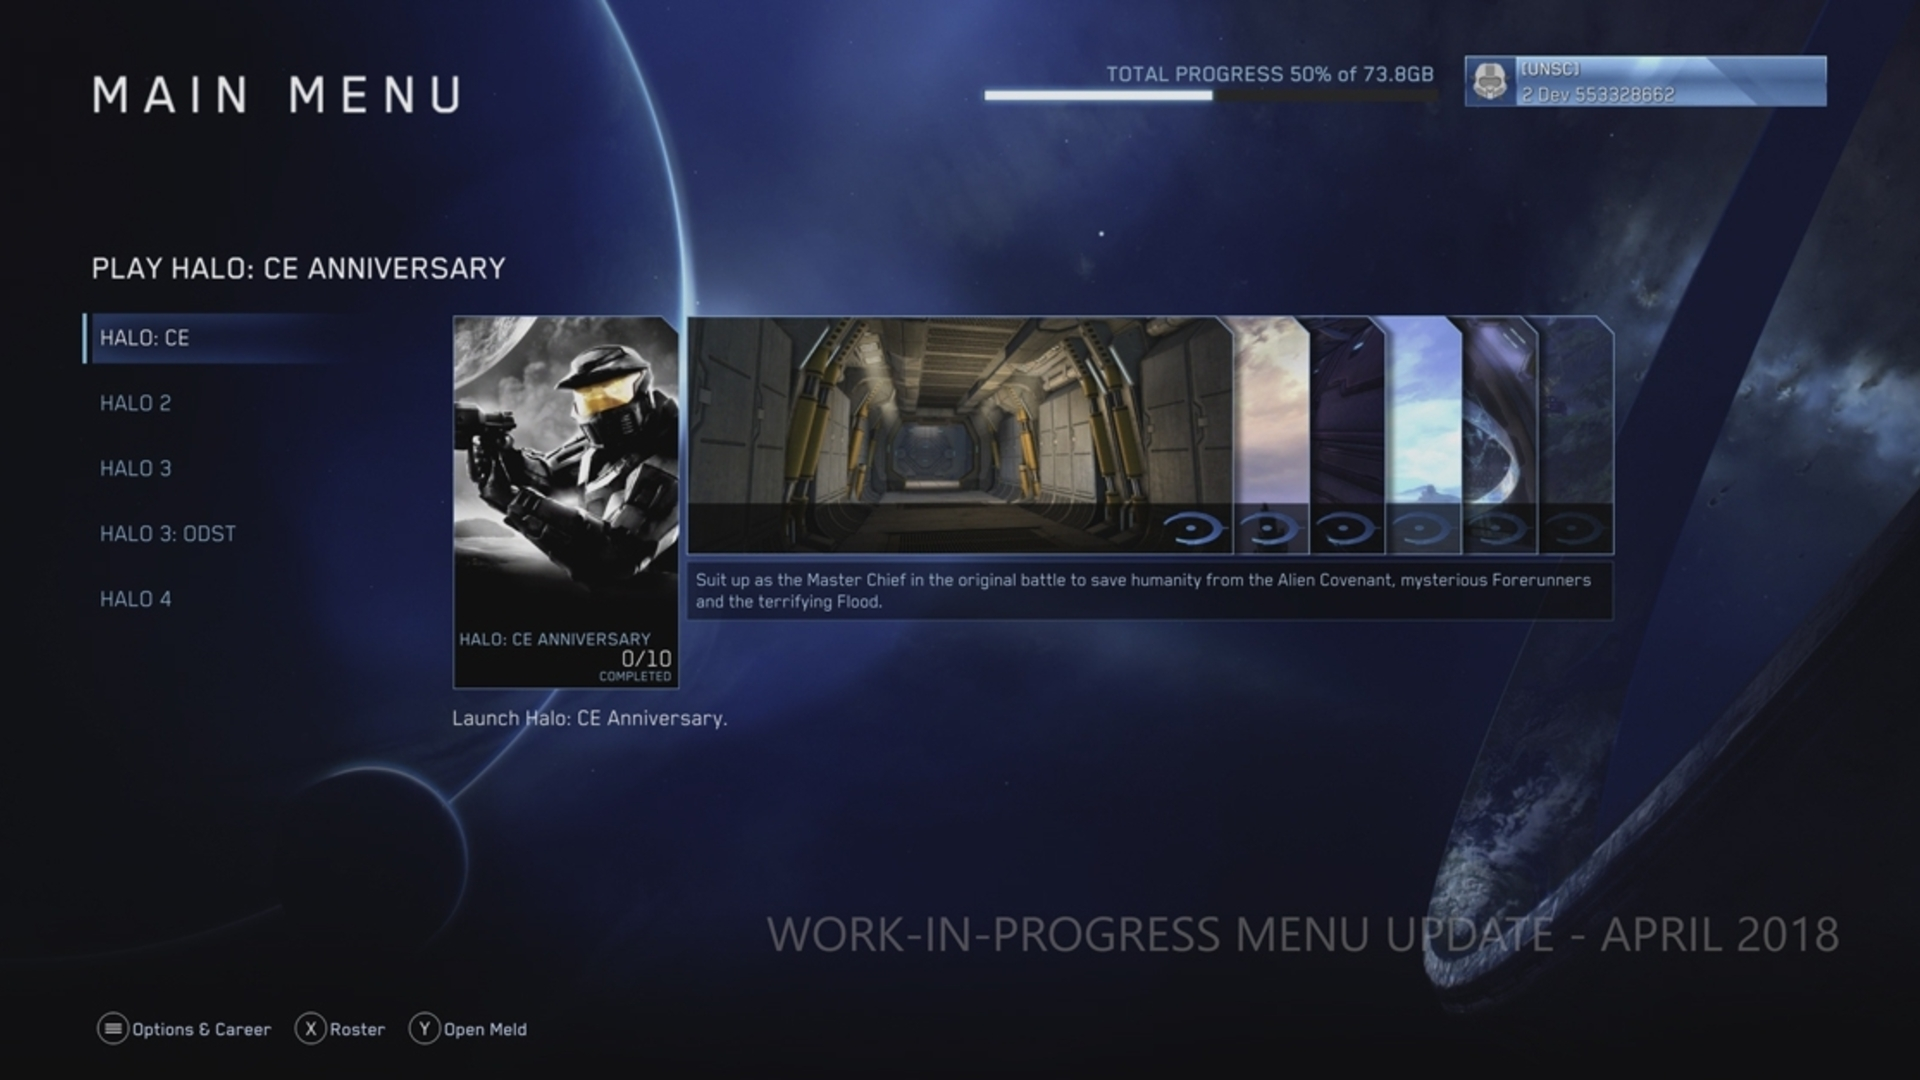 Halo mcc matchmaking taking a long time